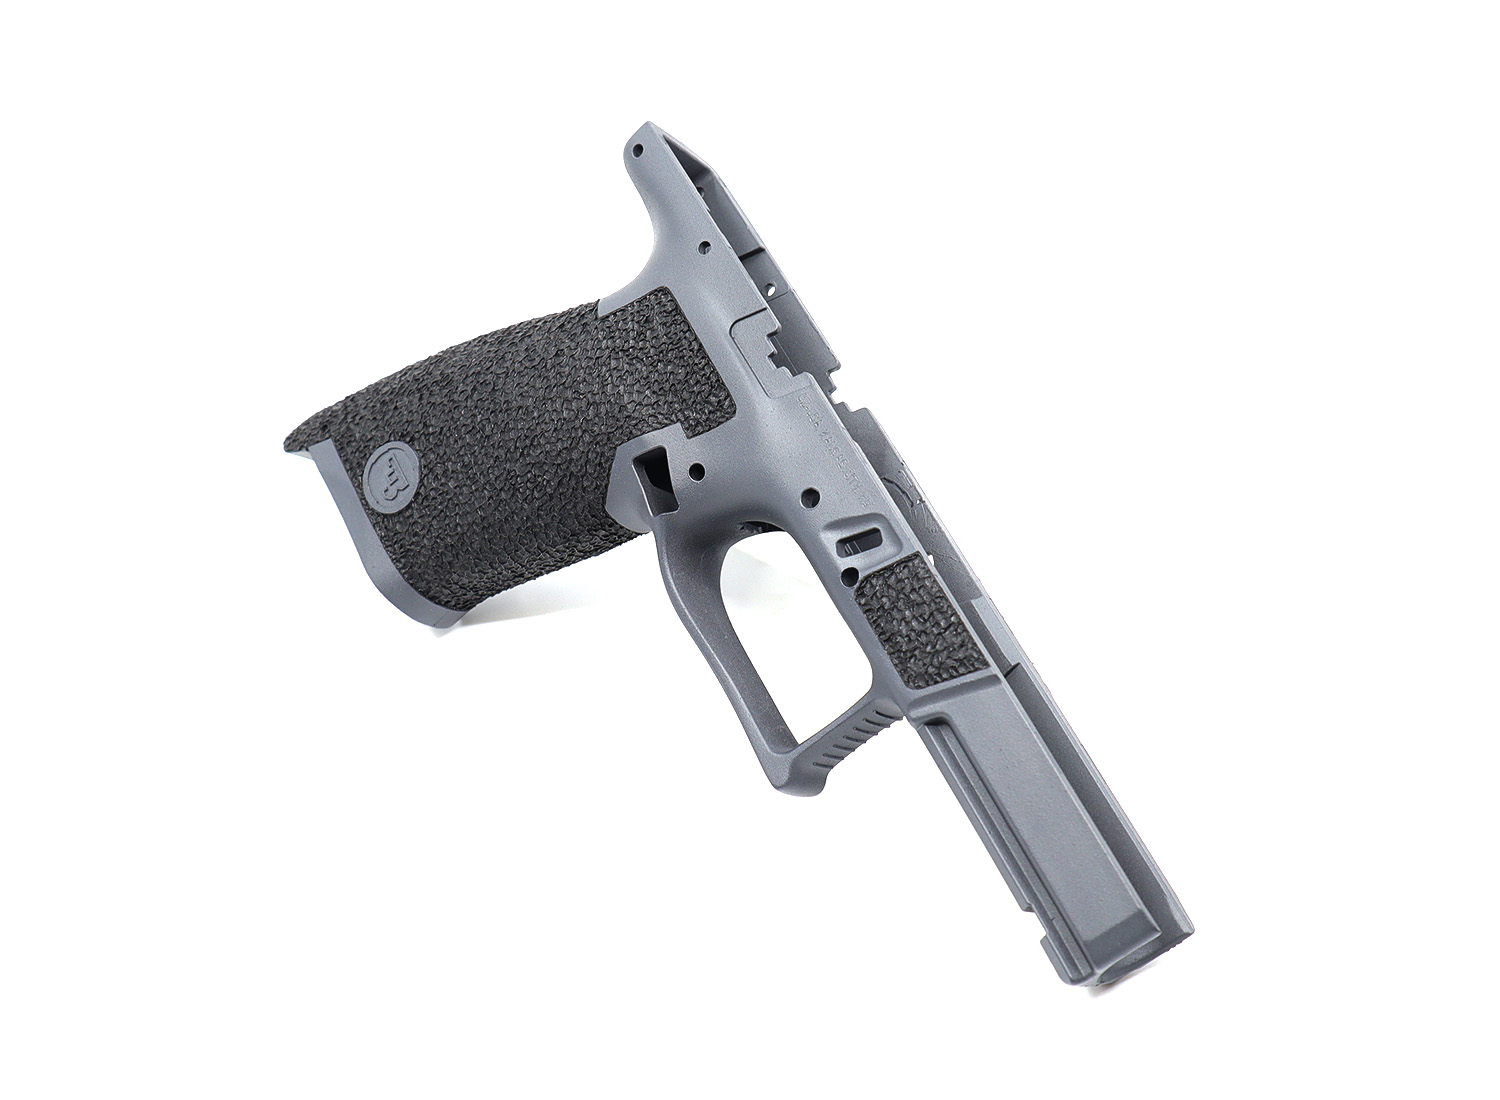 CZ P10C Stippling | P07 & P09 STIPPLING | ELITE PACKAGE